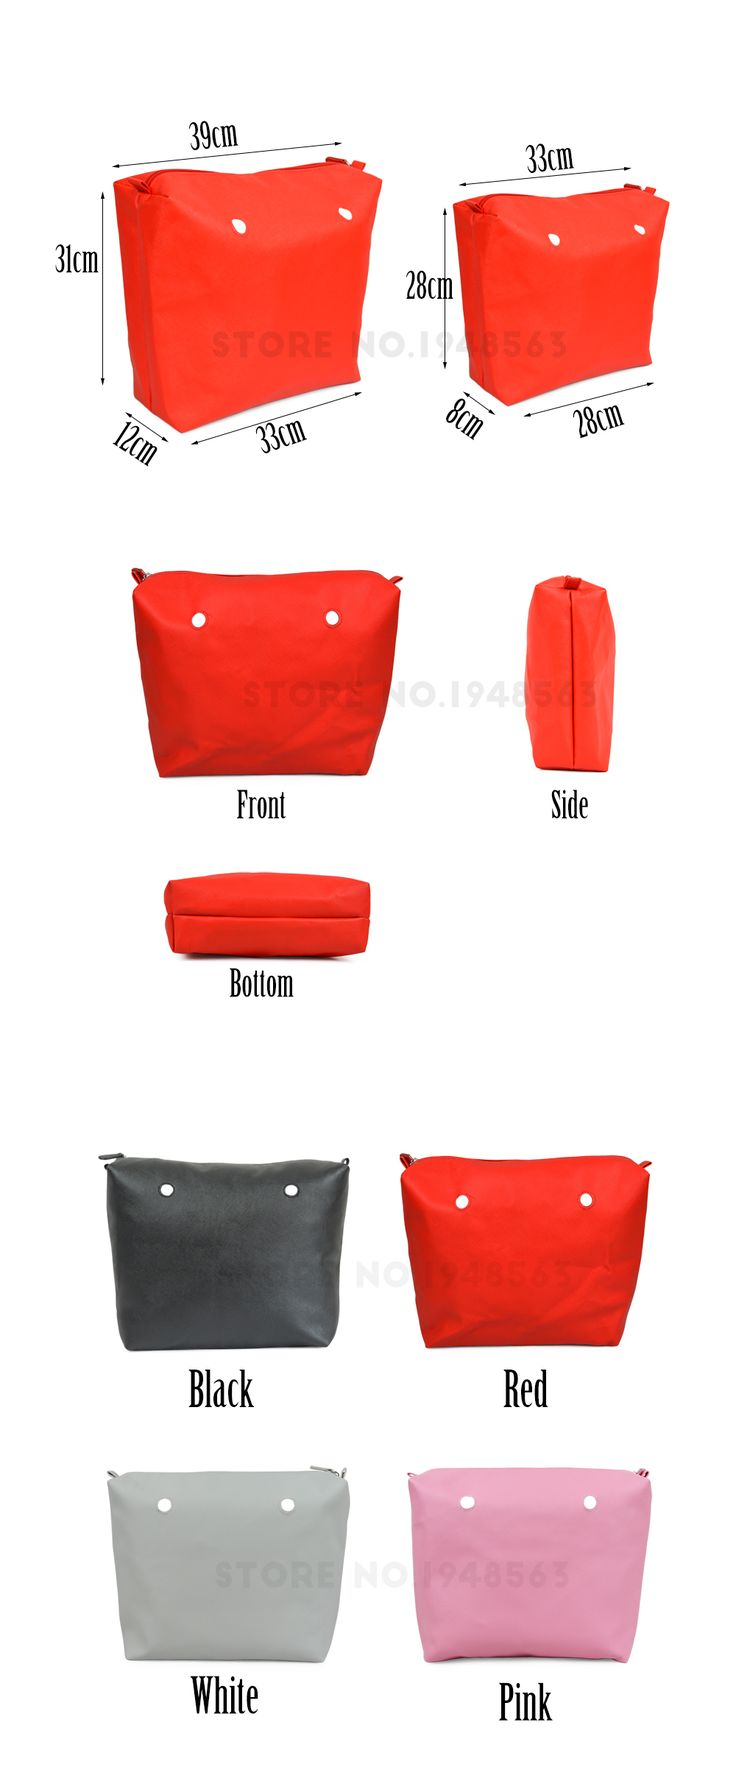 New Colors Obag Waterproof Inner Lining Zipper Pocket for Obag Lining Insert Super Advanced PU Leather for Big Classic O Bag-in Top-Handle Bags from Luggage & Bags on Aliexpress.com | Alibaba Group